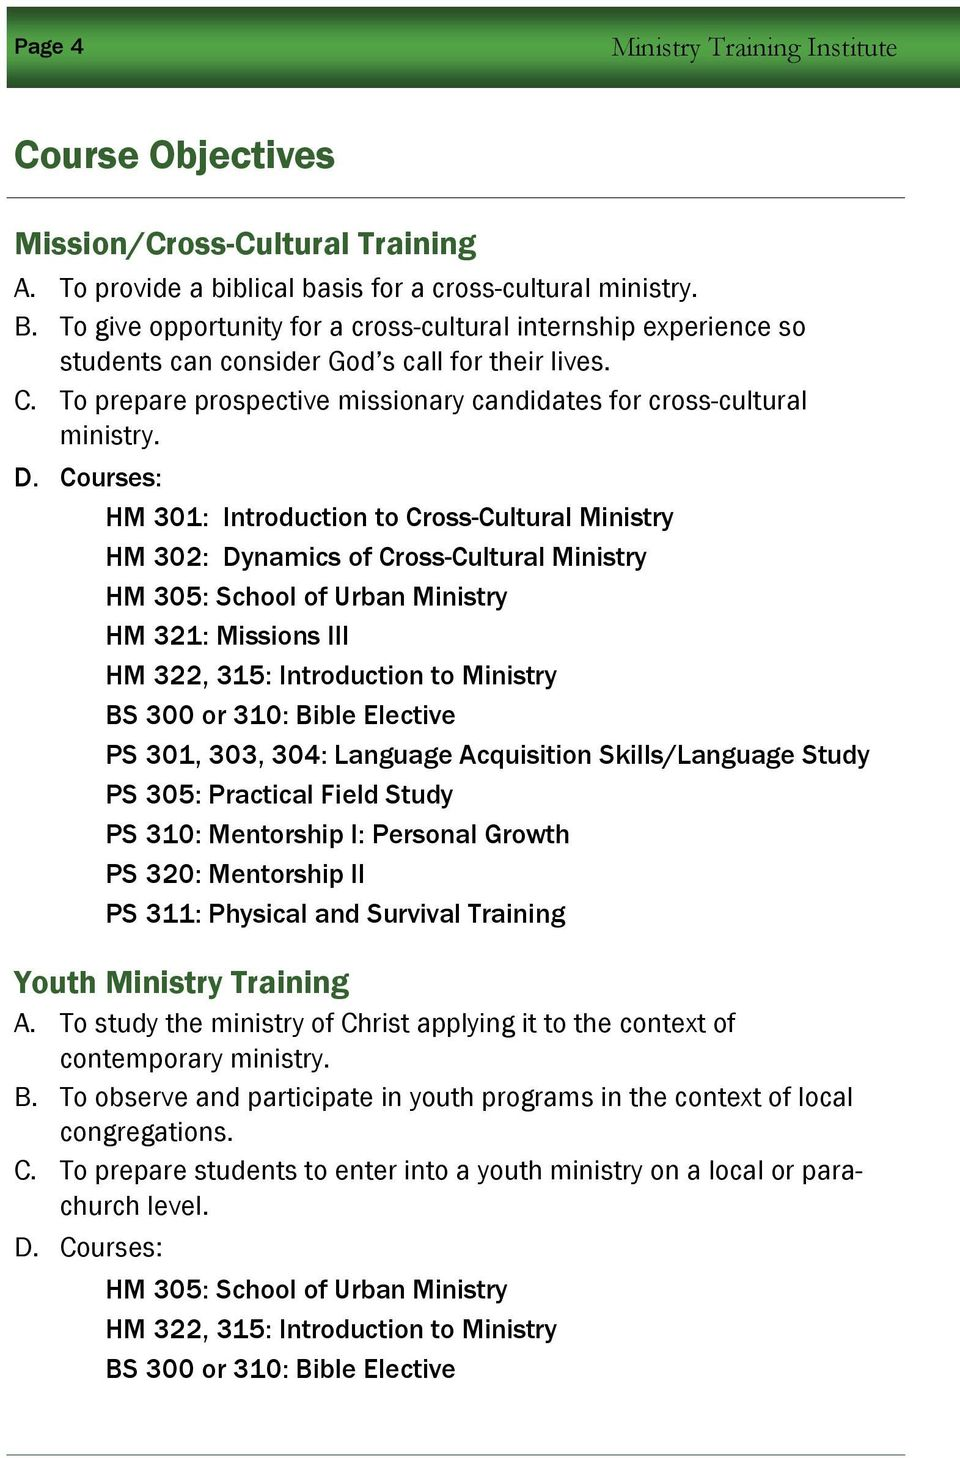 Courses: HM 301: Introduction to Cross-Cultural Ministry HM 302: Dynamics of Cross-Cultural Ministry HM 305: School of Urban Ministry HM 321: Missions III HM 322, 315: Introduction to Ministry BS 300